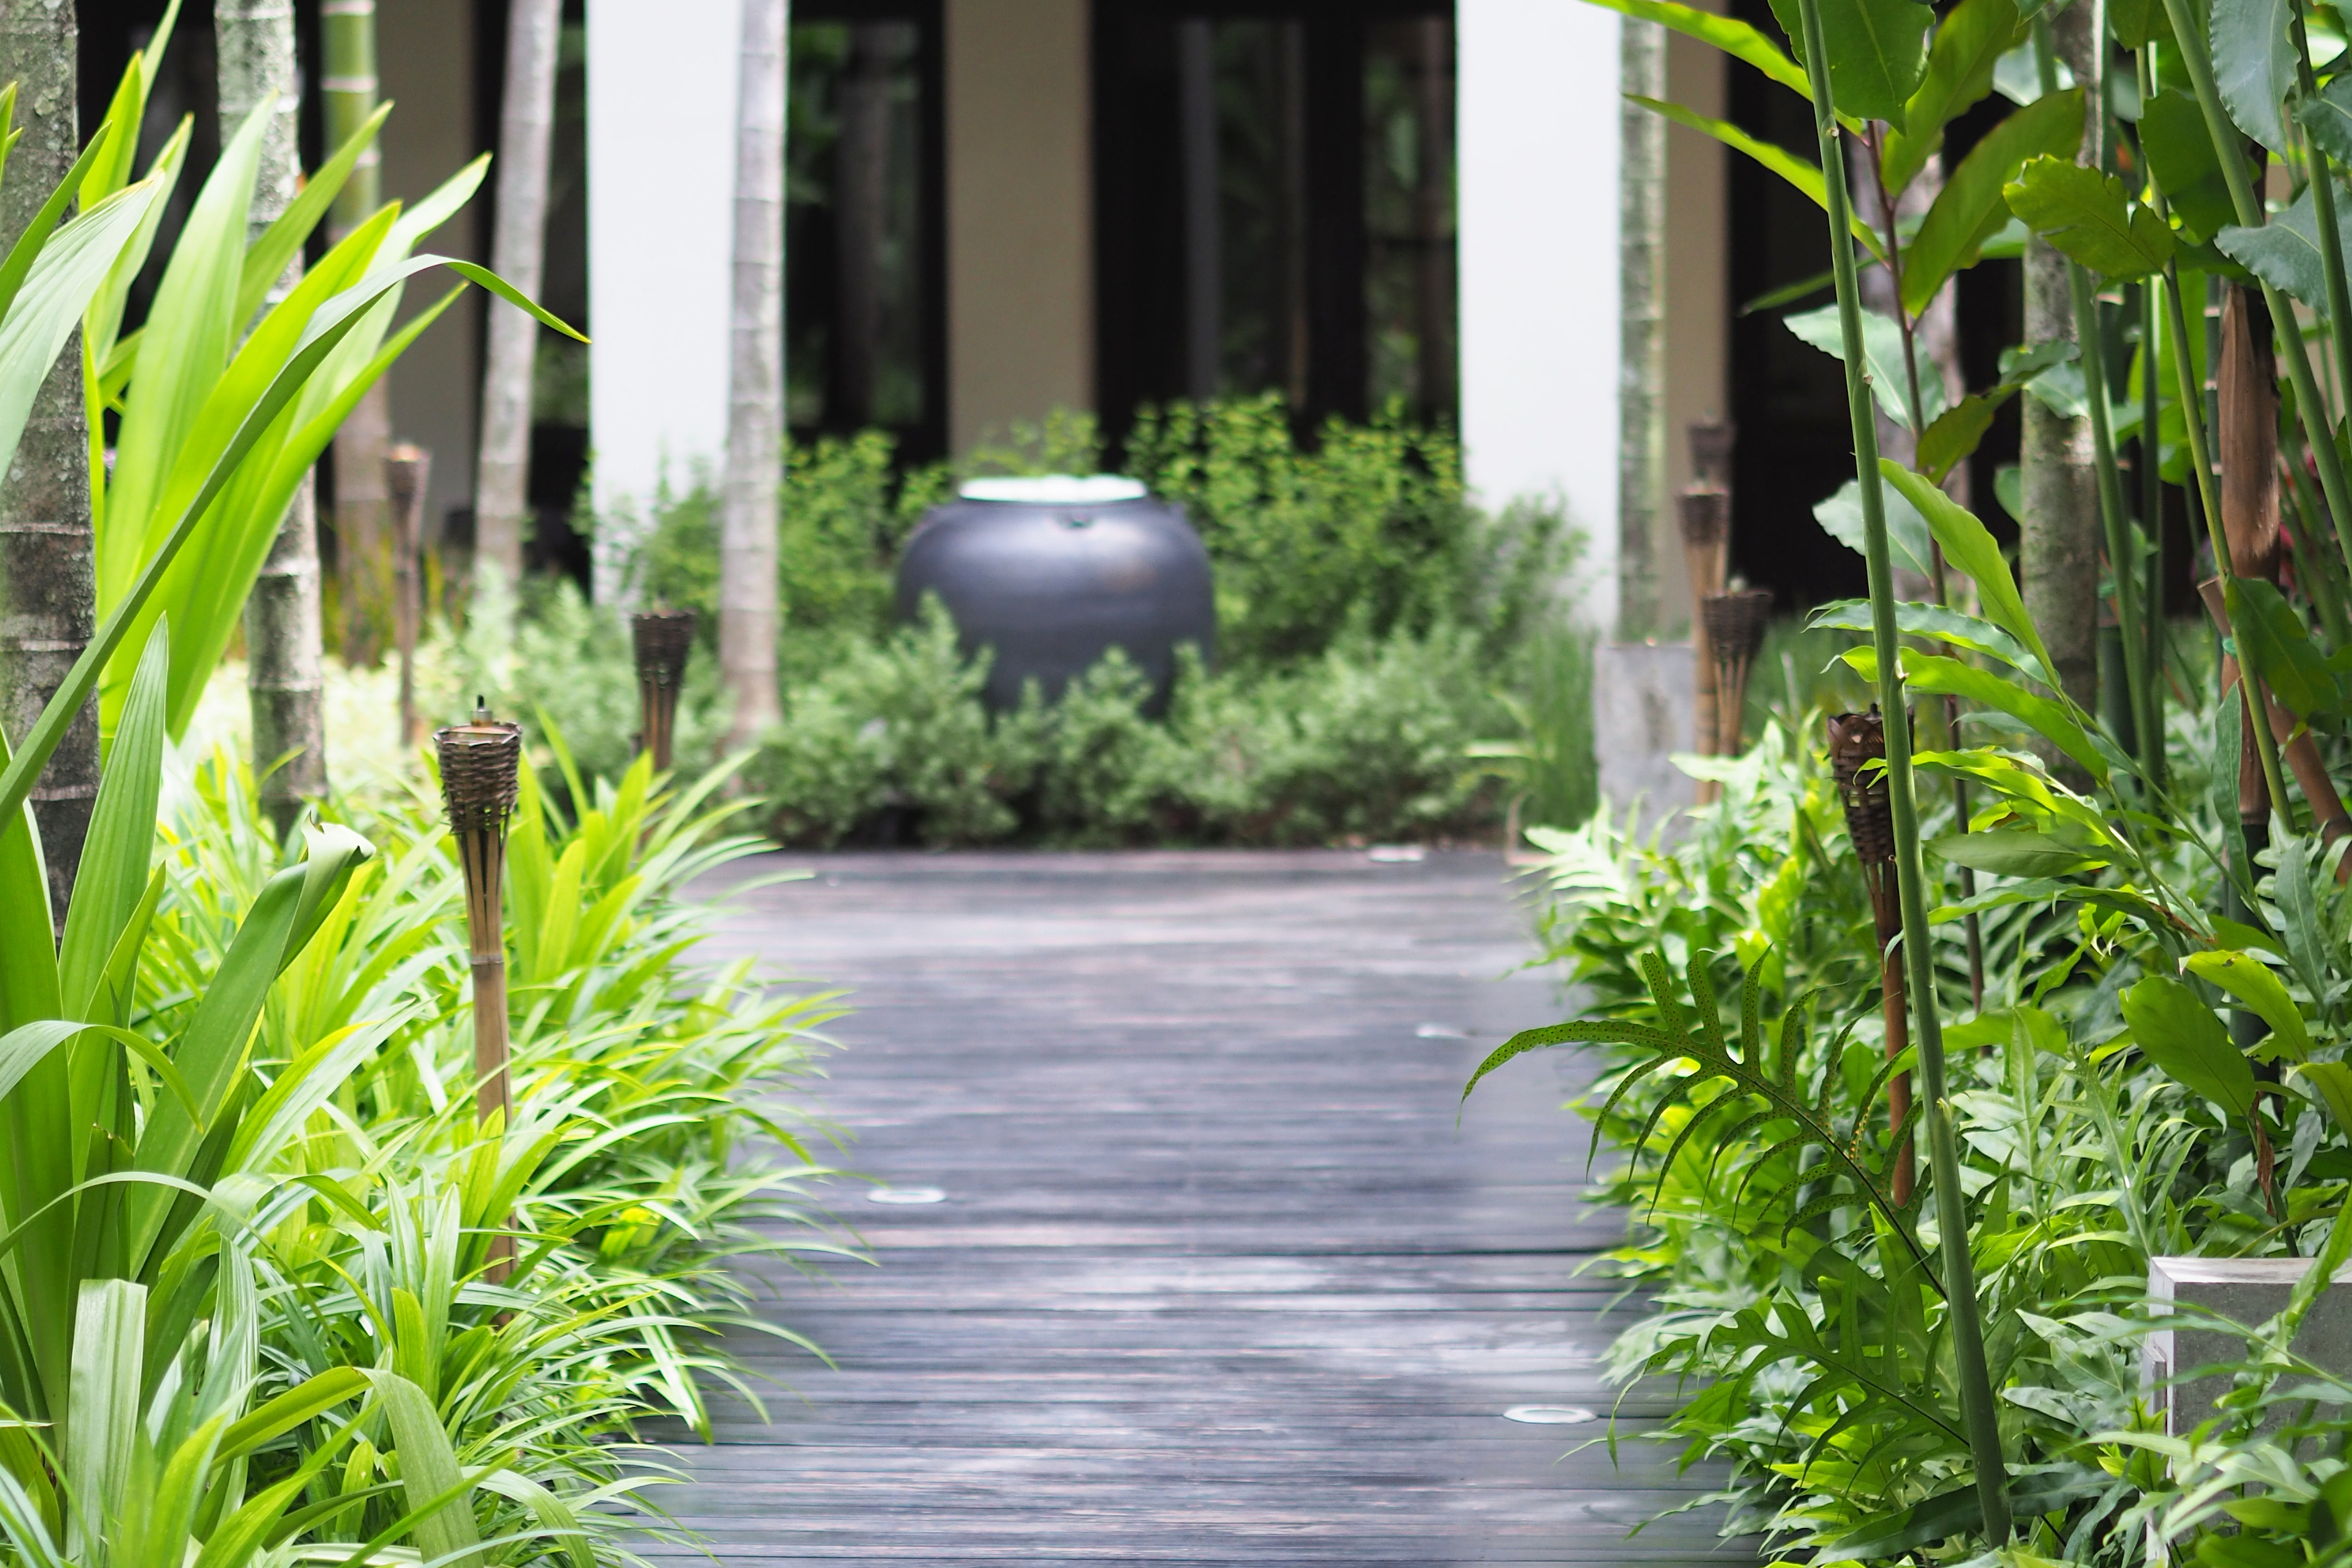 Having a nice garden path can really make or break your garden. These garden paths can really help update your garden and having it looking new in no time.